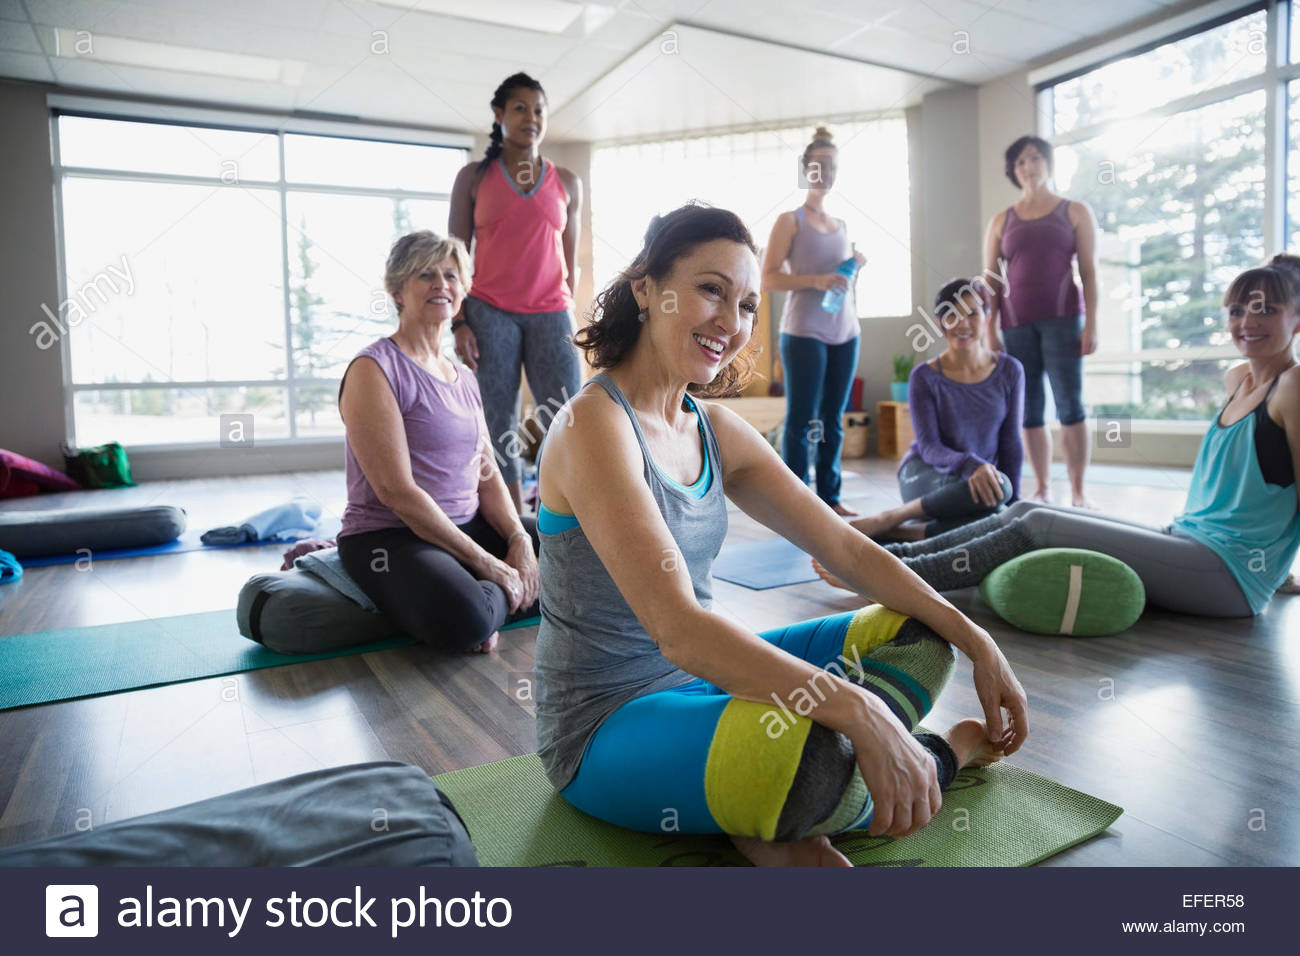 Smiling women in restorative yoga class Photo Stock